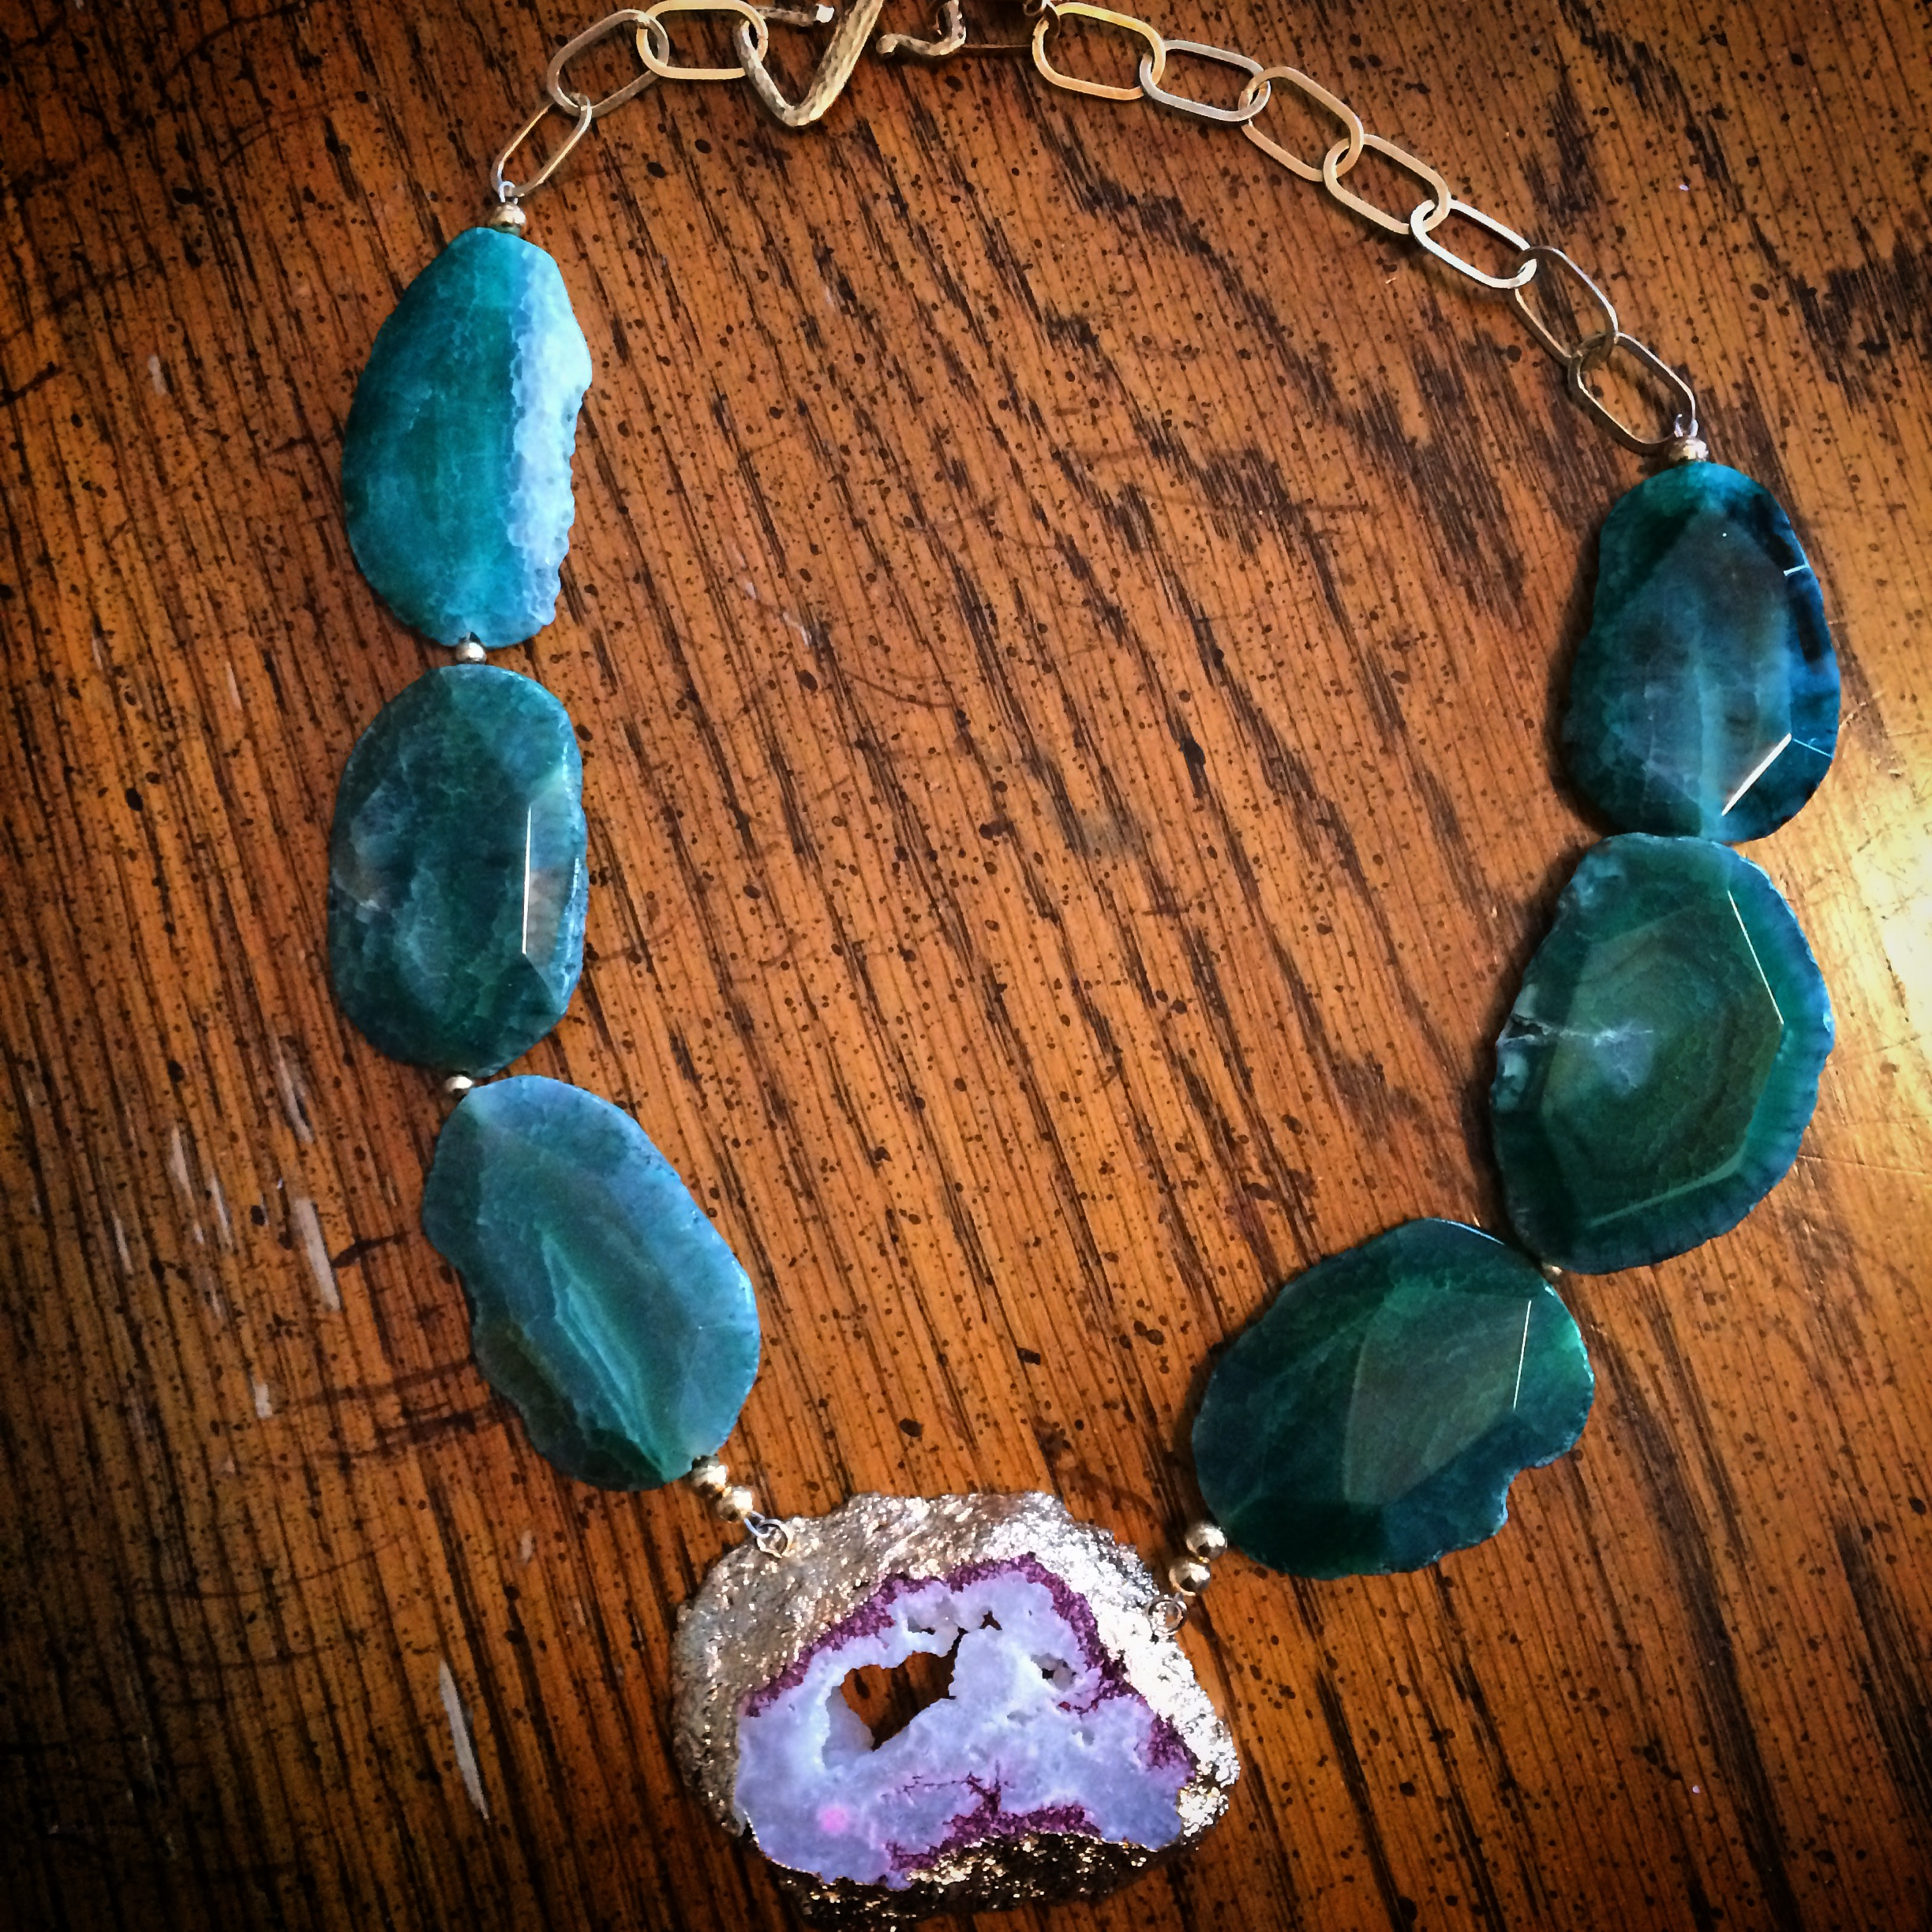 I recently found this amazing jewelry designer of    TherArt    and    Le Obsession Boutique    owner on Instagram,   Teresa Habczyk  . She makes the most AMAZING pieces and I am so happy to have found her. This gorgeous   emerald green agate freeform and pink and white druzy crystal necklace   was the most important accessory at my engagement party last weekend (well, besides my handsome fiance of course!)  I paired it with a light pink romper with black lace, sheer black tights, and black lace pumps. The amount of compliments I received on my fabulous neck accessory was out of this world! Scroll down to check out more pics, the outfit, and more about the designer herself. Then  shop online here:   https://www.etsy.com/shop/teresajewelry